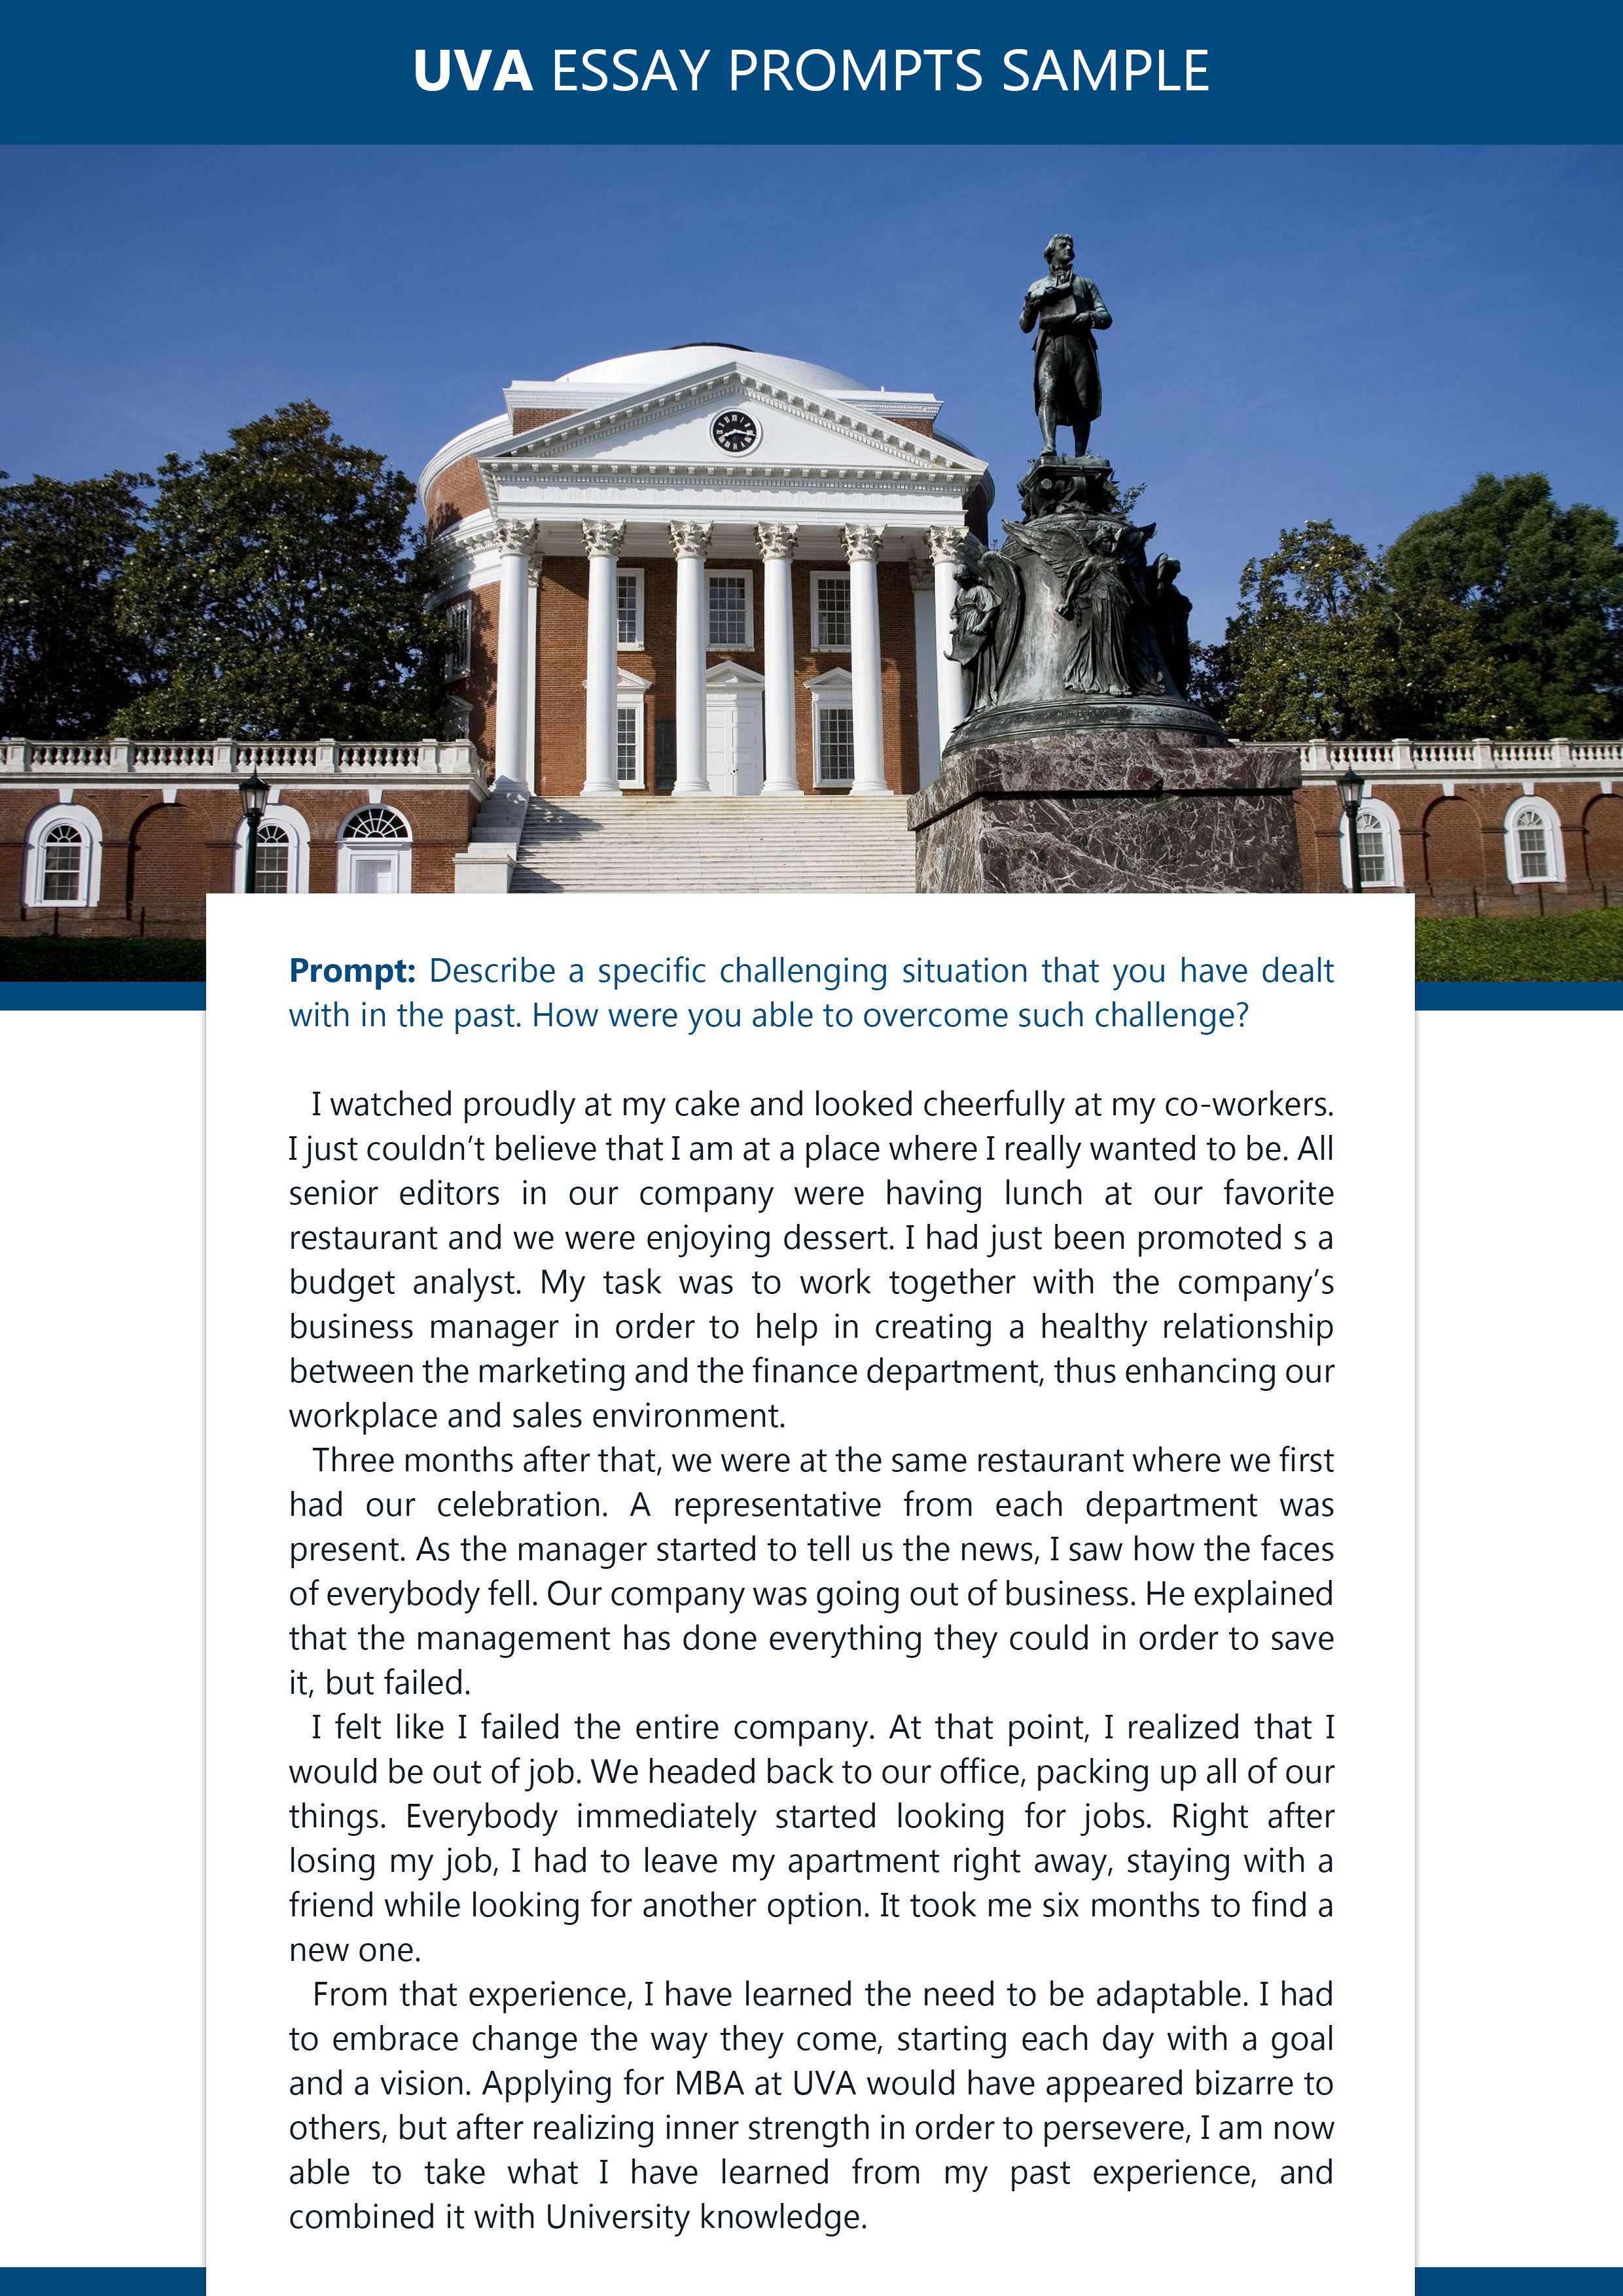 001 Uva Essay Prompts Example Fantastic 2016 Writing 2015-16 Full